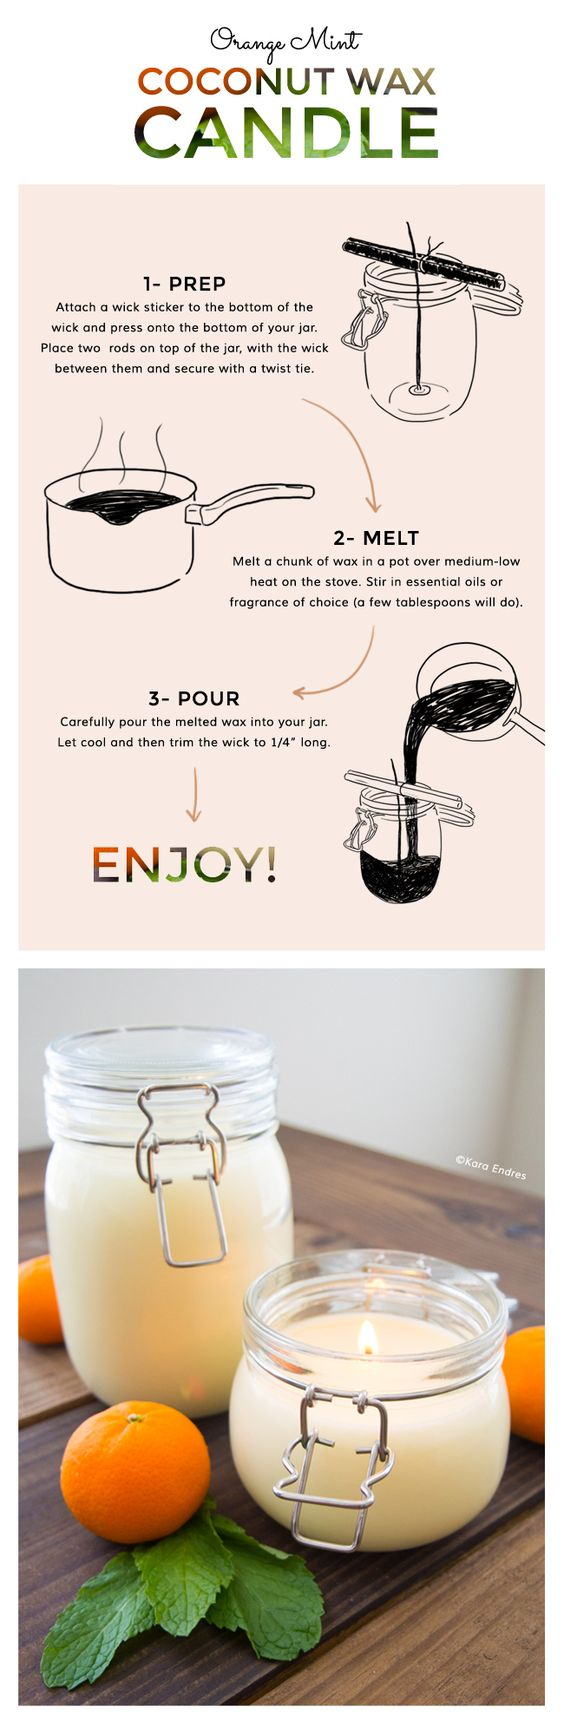 diy-coconut-wax-candles via